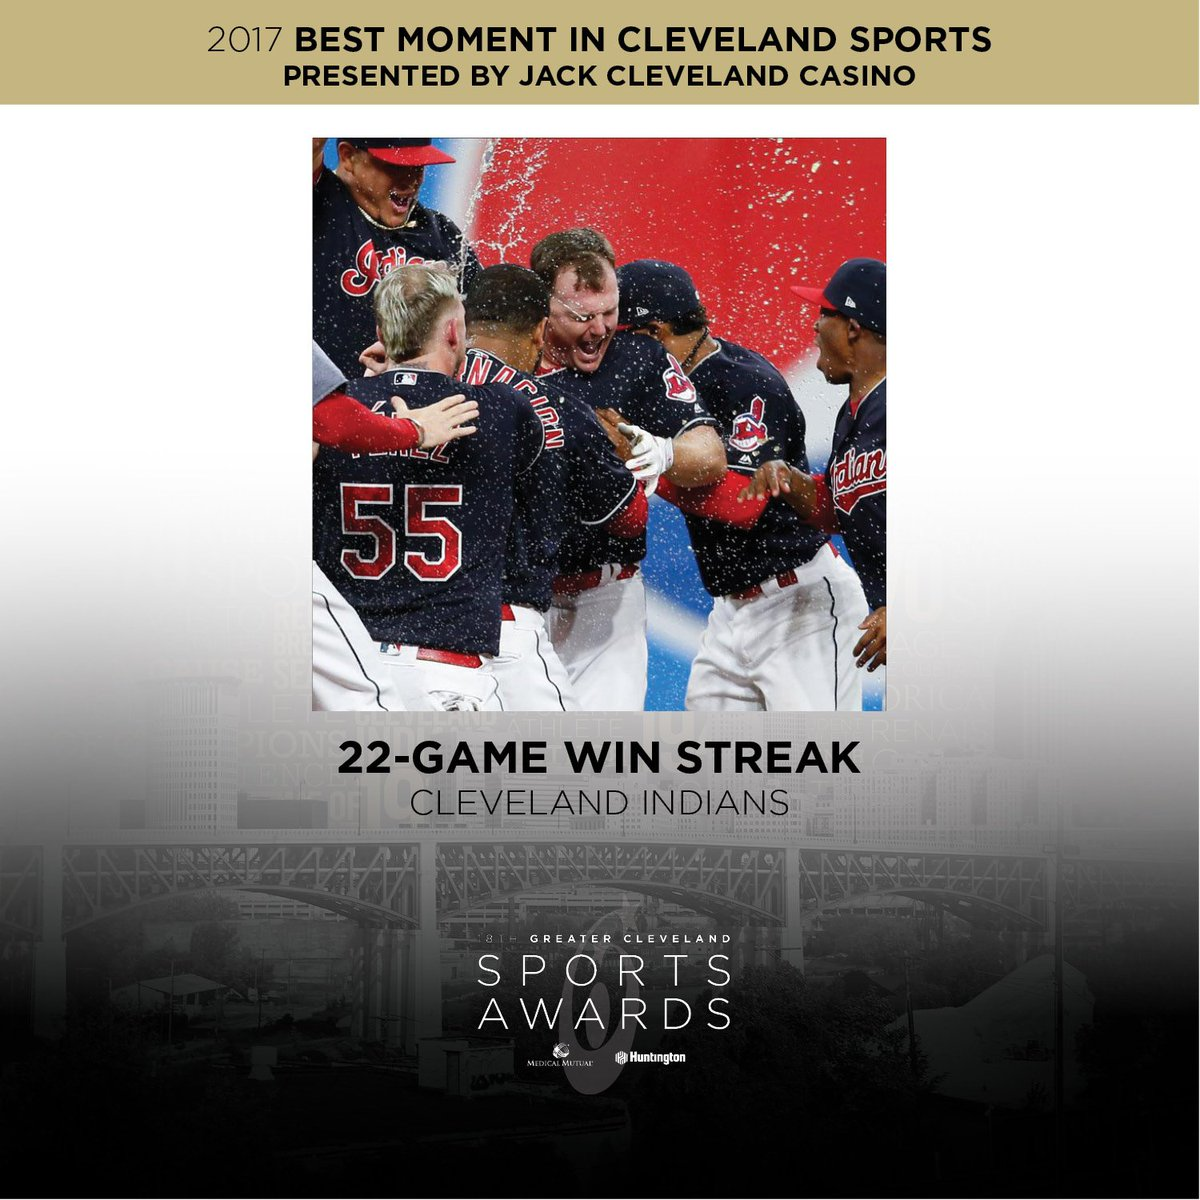 Greater Cleveland Sports Commission On Twitter 2017 Was Another